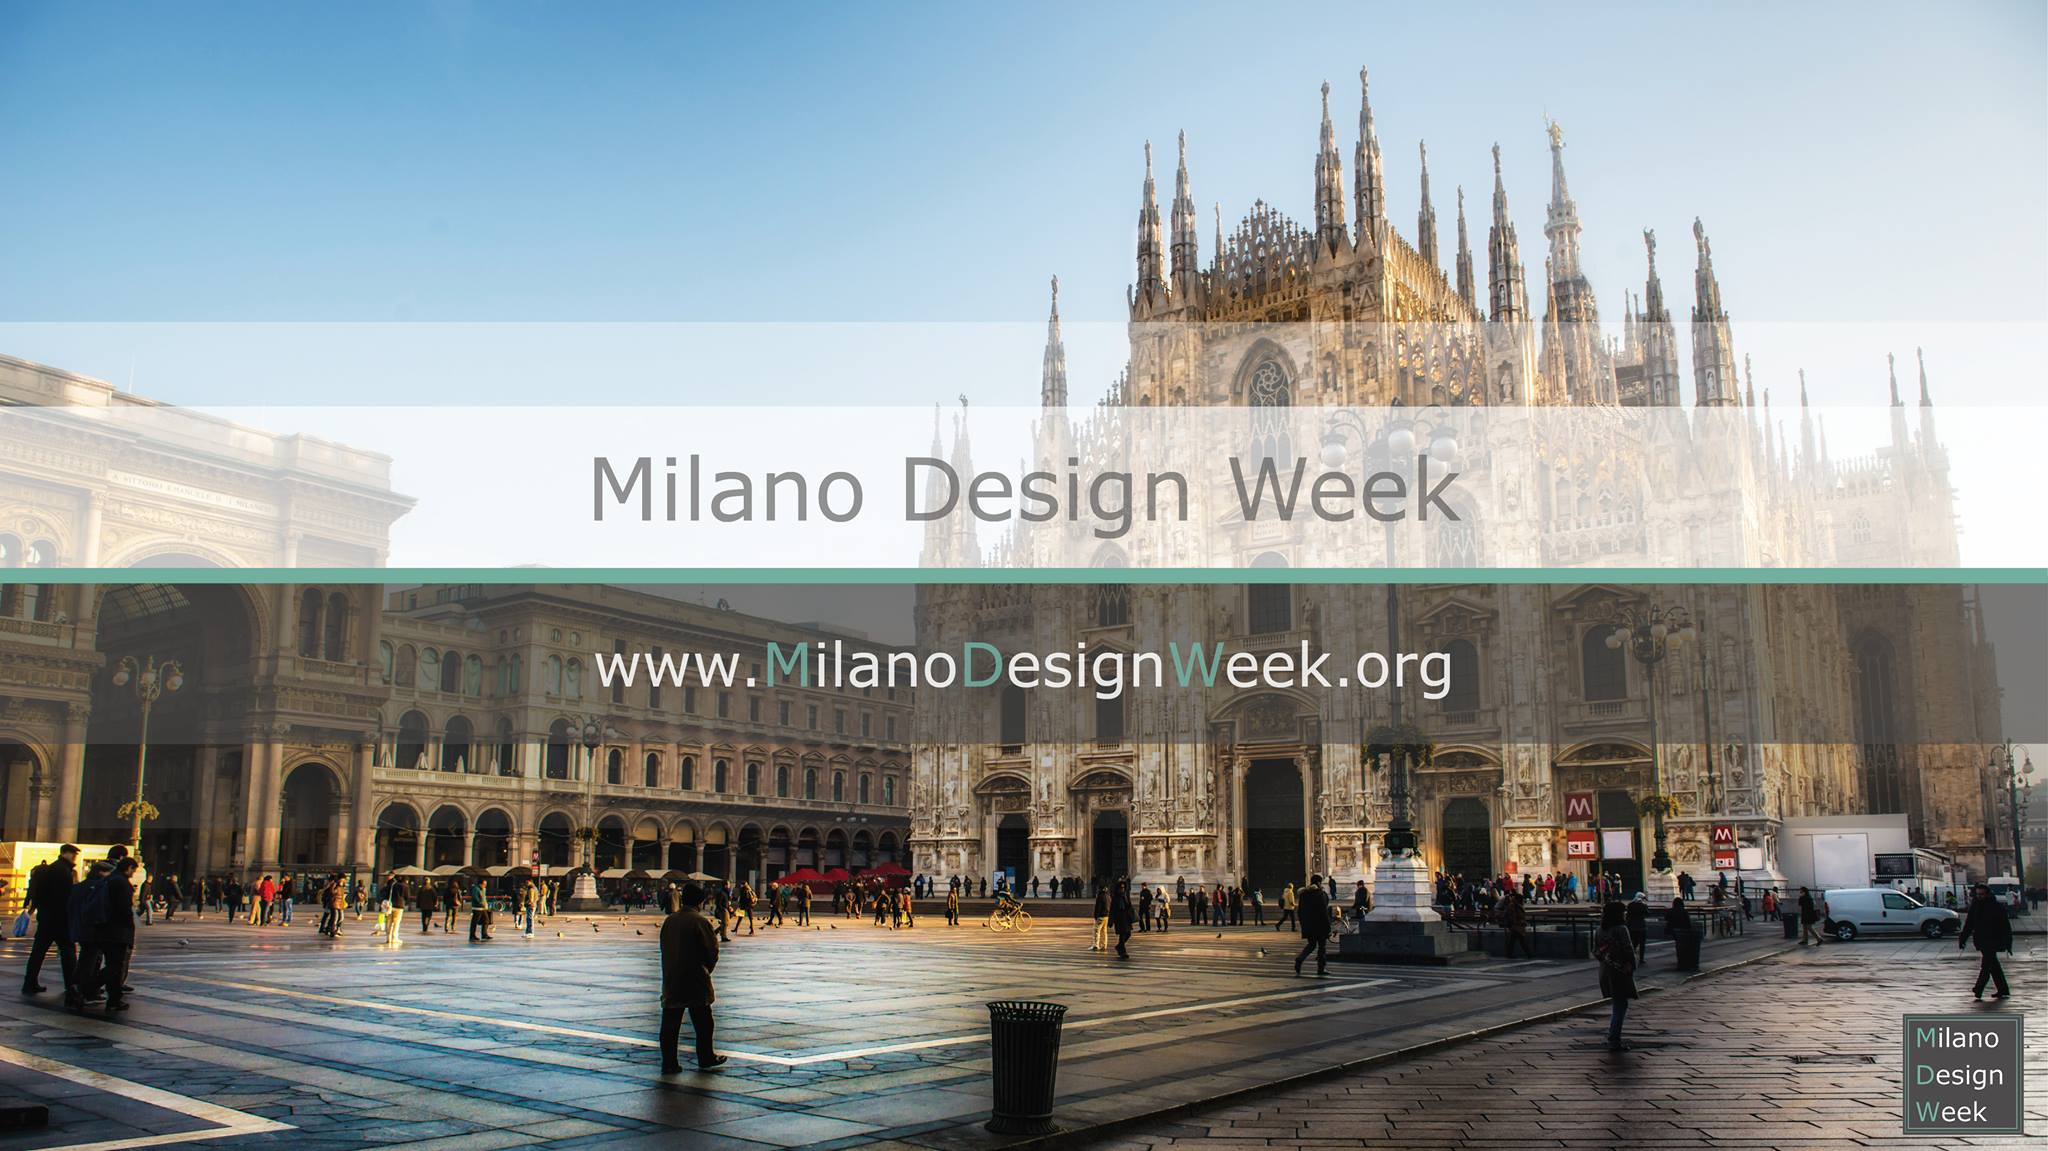 Isaloni 2016: What to see at Tortona Design Week new furniture designs Meet LUXXU's New Furniture Designs At iSaloni 2019 What to see at Tortona Design Week new furniture designs Meet LUXXU's New Furniture Designs At iSaloni 2019 What to see at Tortona Design Week